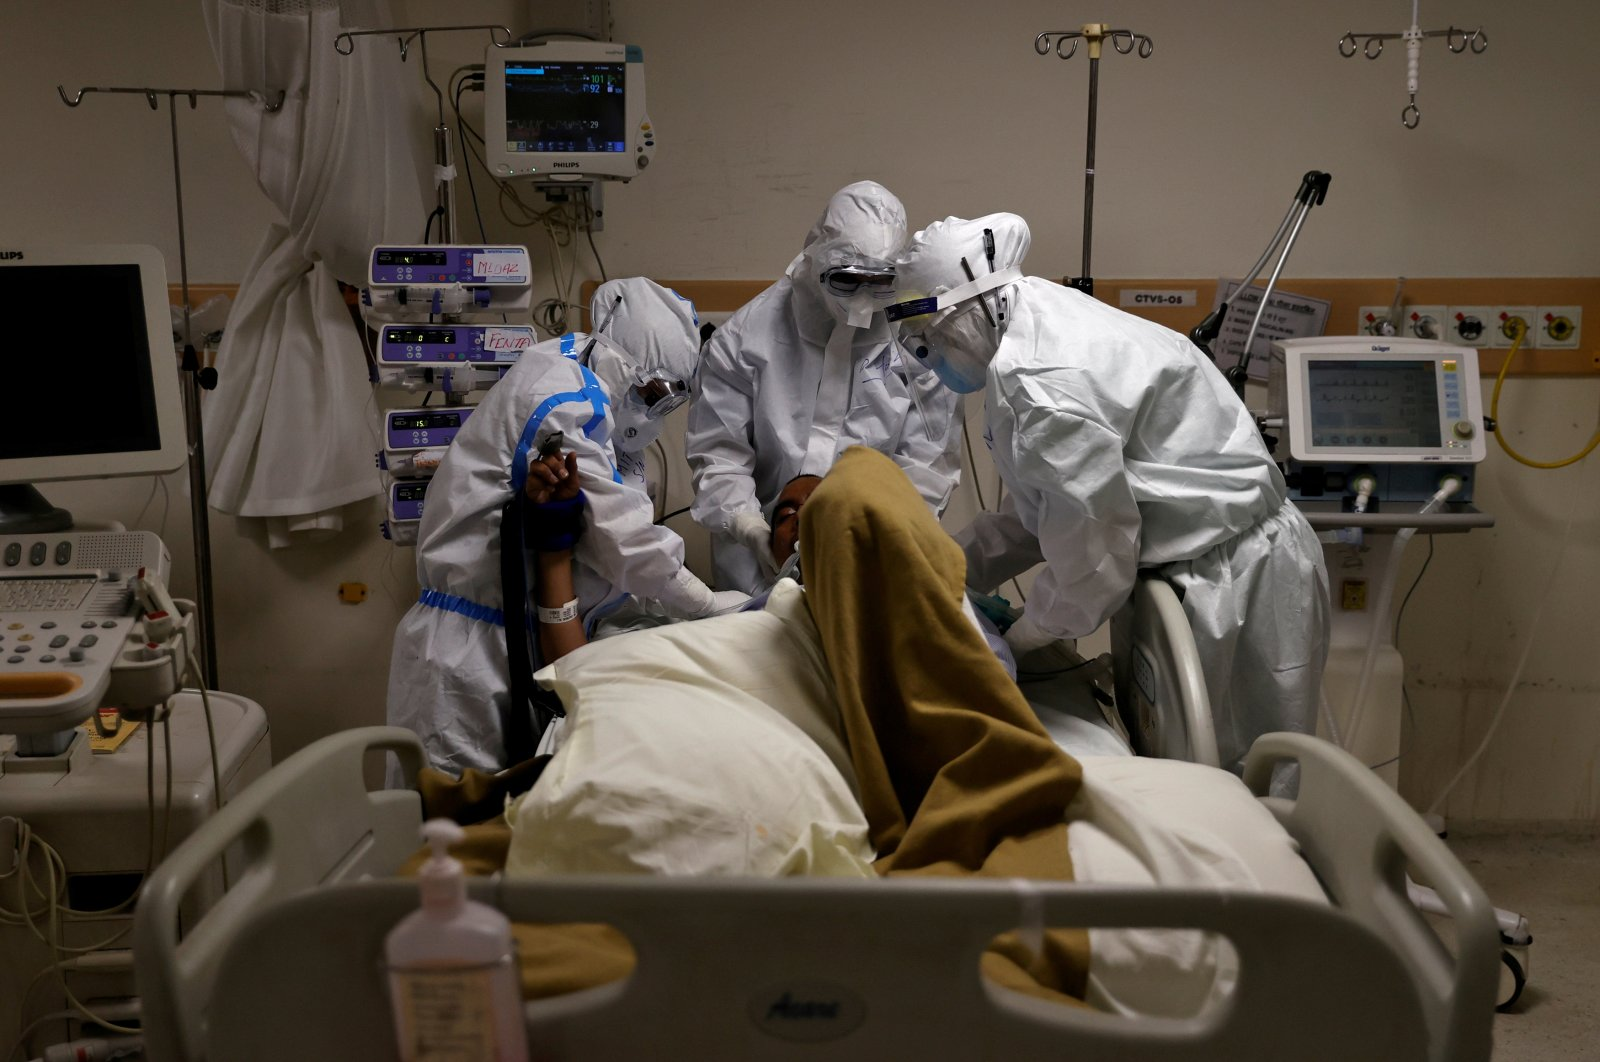 Medical workers wearing personal protective equipment (PPE) take care of a patient suffering from COVID-19 at the Intensive Care Unit (ICU) of the Max Smart Super Speciality Hospital in New Delhi, India, May 28, 2020. (Reuters Photo)